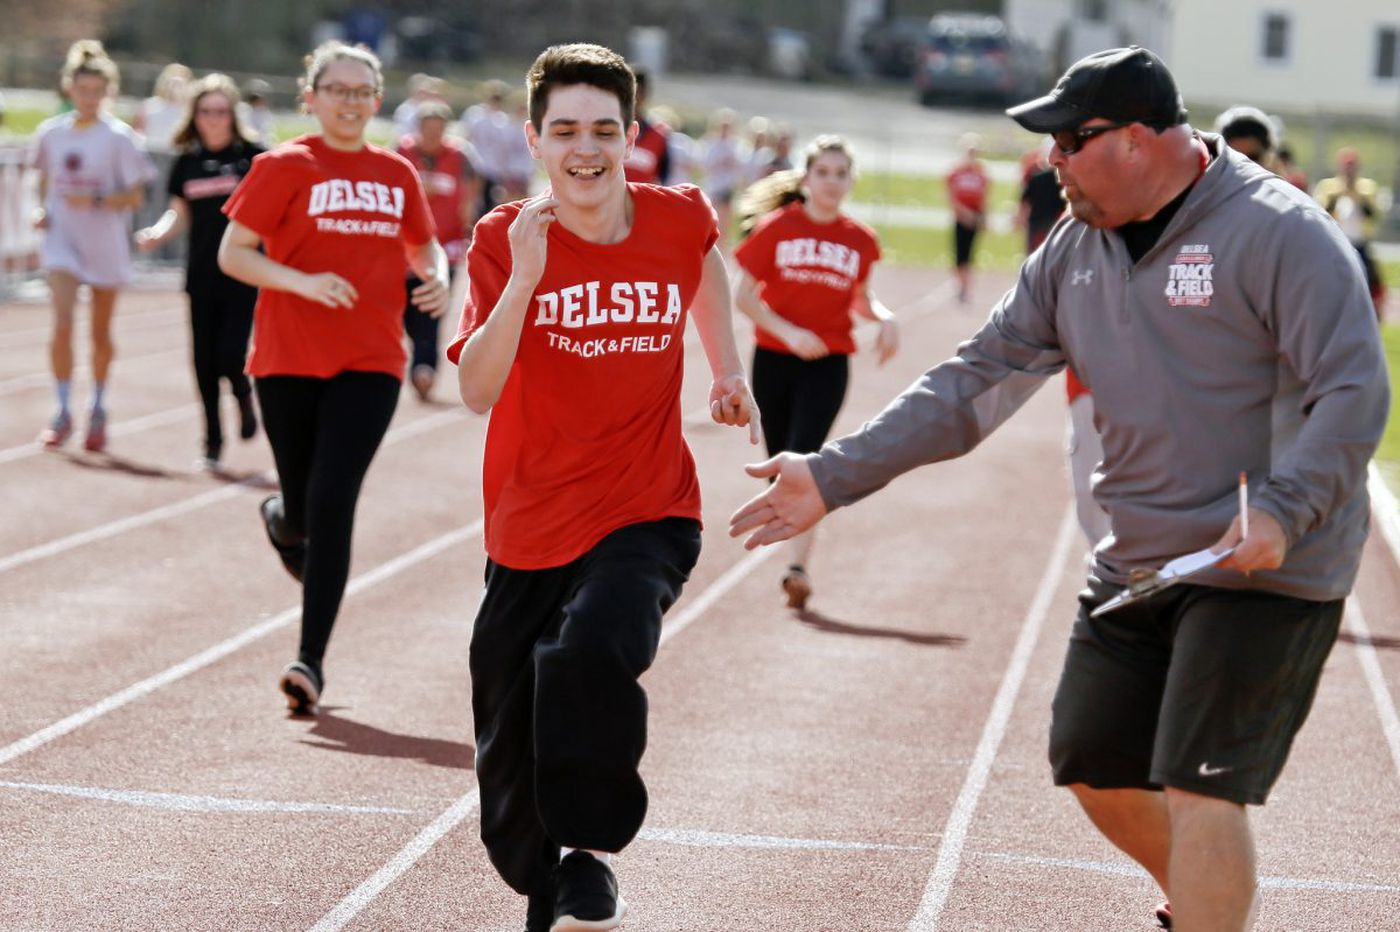 Unified Sports brings out best in everybody   Phil Anastasia